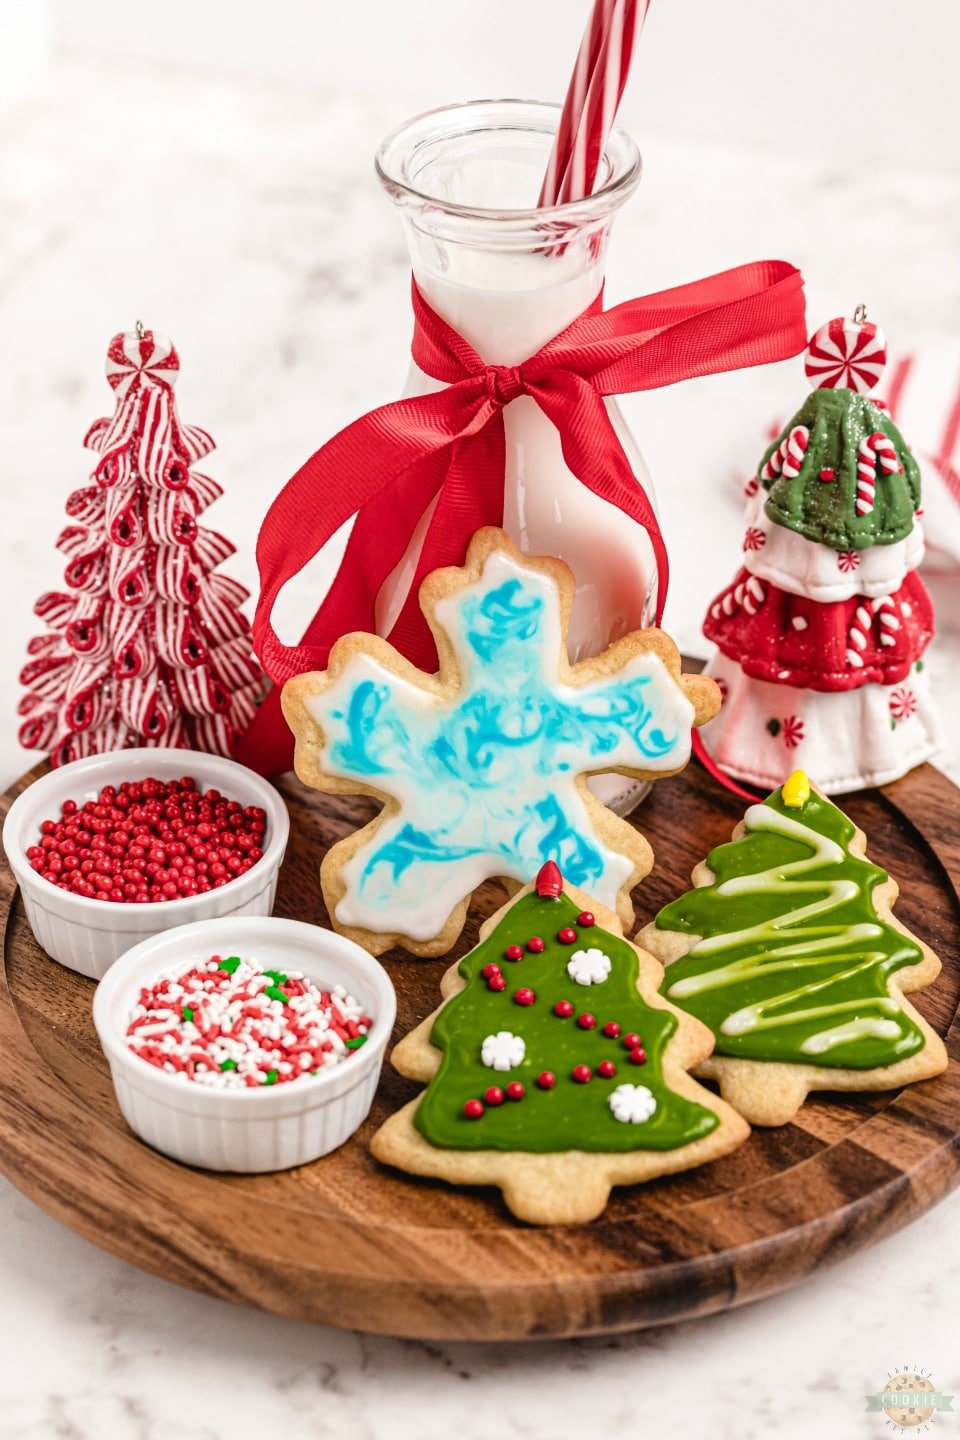 1632466191_980_CHRISTMAS-CUT-OUT-COOKIES